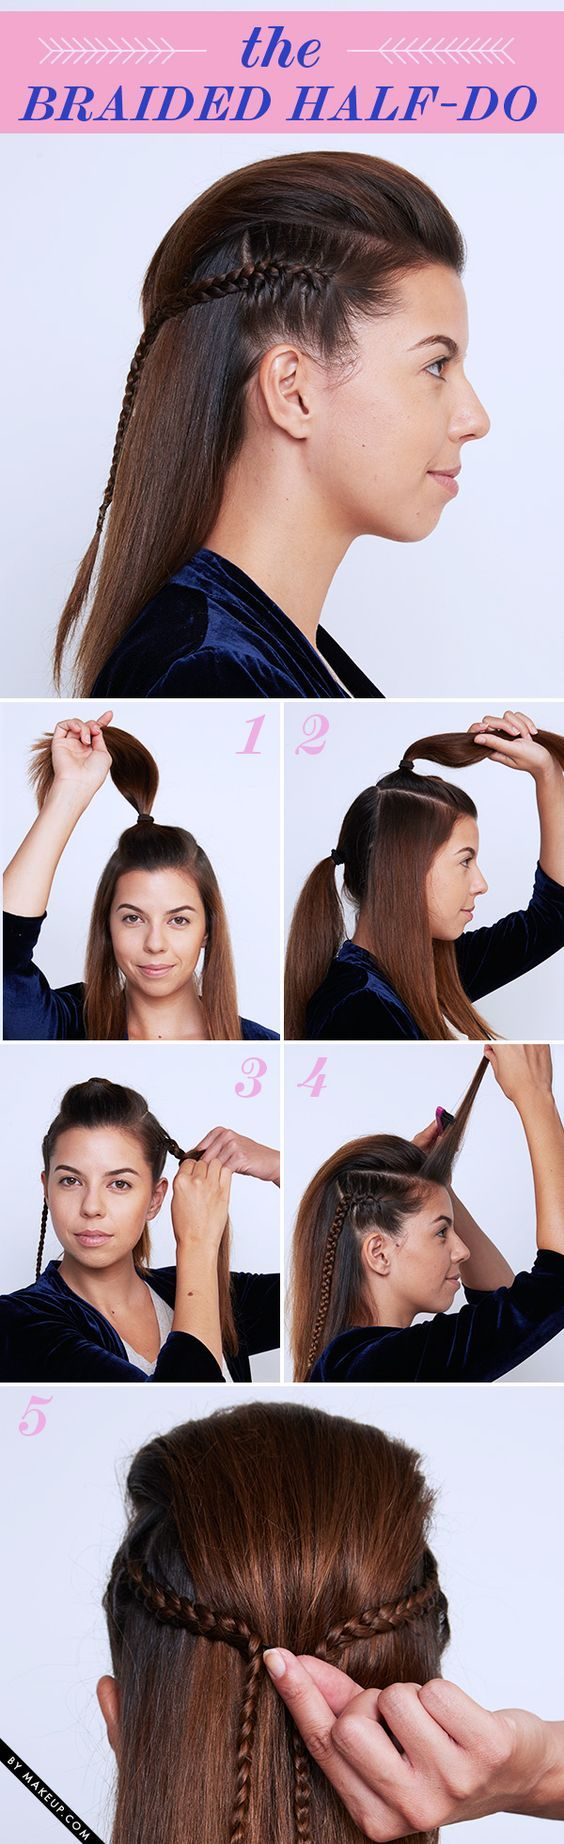 17 Easy DIY Tutorials For Glamorous and Cute Hairstyle  40 Easy Hair Tutorials (For long and short hair)   15 Cute, Easy Hairstyle Tutorials For Medium-Length Hair  affiliate link